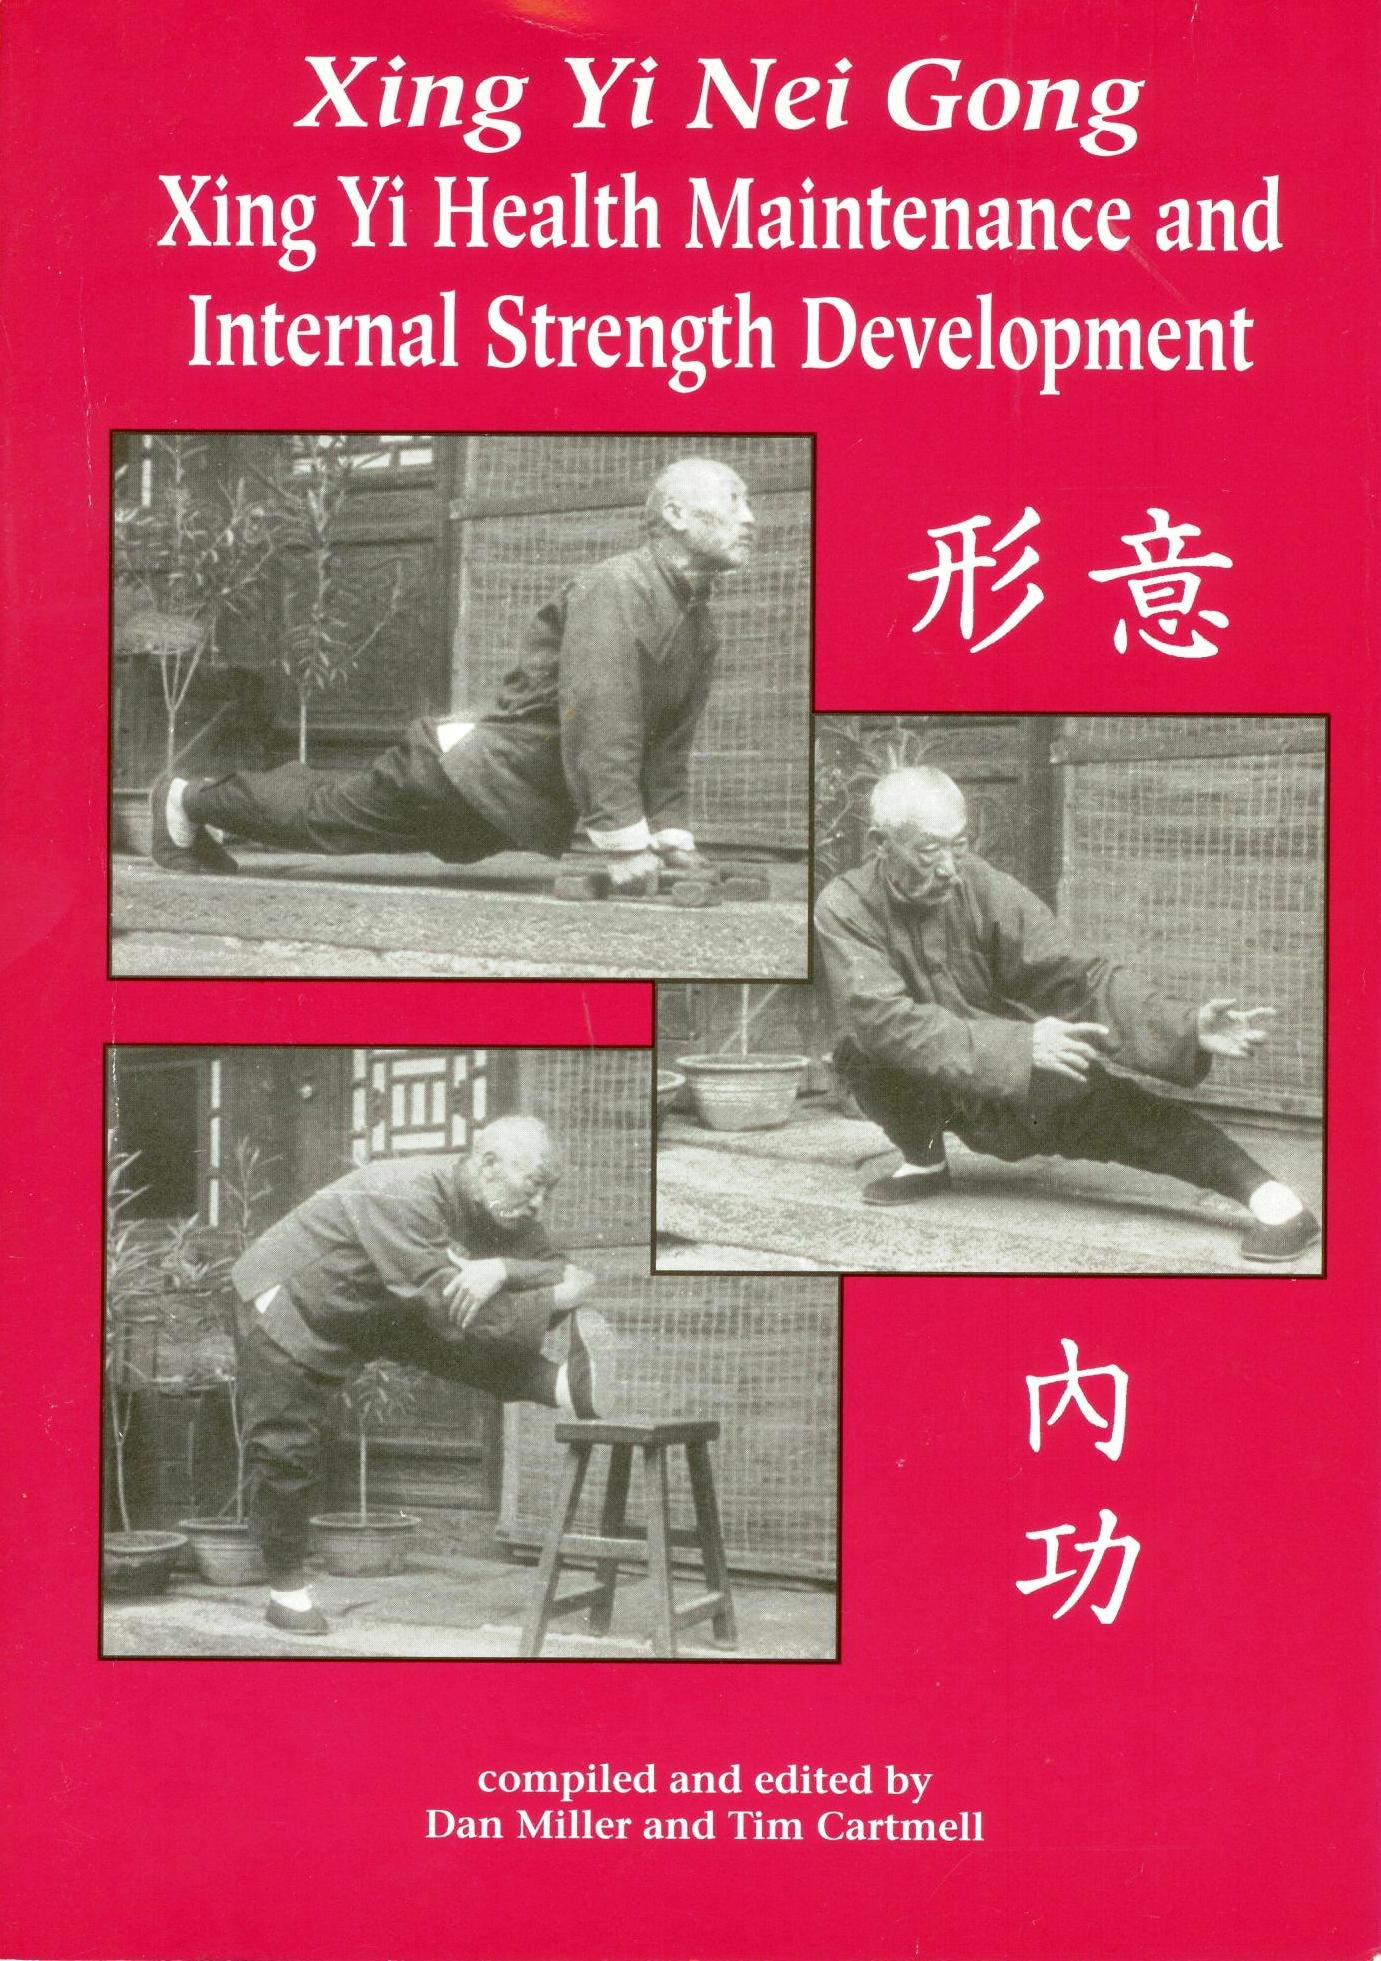 Xing Yi Nei Gong: Health Maintenance and Internal Strength Development: Dan  Miller, Tim Cartmell, Dan Millman: 9781883175047: Amazon.com: Books